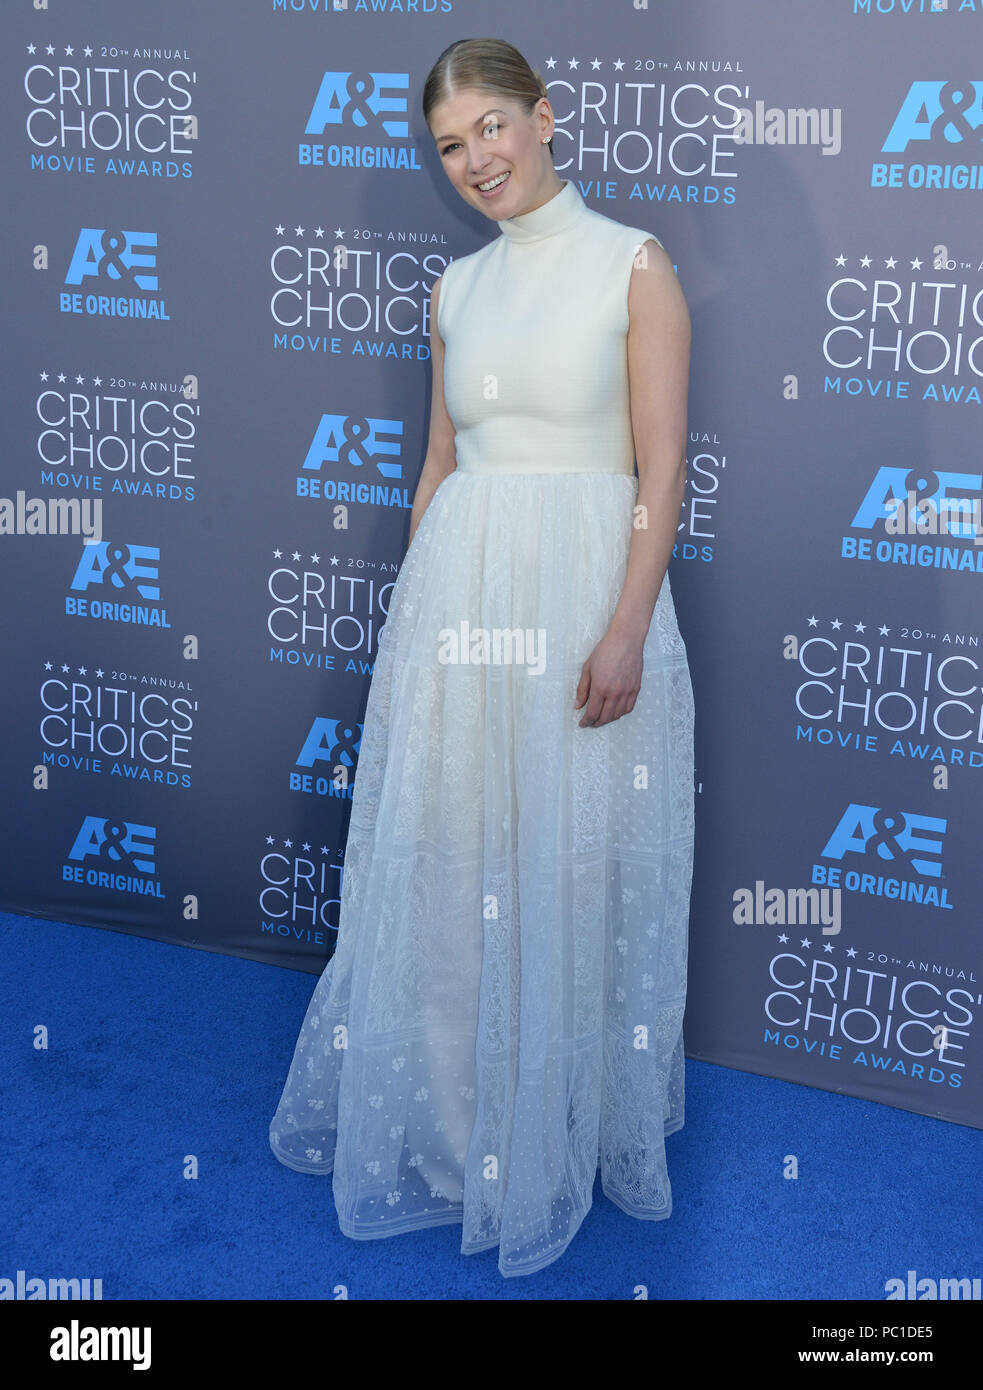 Rosamund Pike 118 at the 2015 Critics' Choice Movie Awards at the The Palladium theatre in Los Angeles. January 15, 2015Rosamund Pike 118  Event in Hollywood Life - California, Red Carpet Event, USA, Film Industry, Celebrities, Photography, Bestof, Arts Culture and Entertainment, Topix Celebrities fashion, Best of, Hollywood Life, Event in Hollywood Life - California, Red Carpet and backstage, movie celebrities, TV celebrities, Music celebrities, Topix, Bestof, Arts Culture and Entertainment, vertical, one person, Photography,   Fashion, full length, 2014 inquiry tsuni@Gamma-USA.com , Credit T - Stock Image